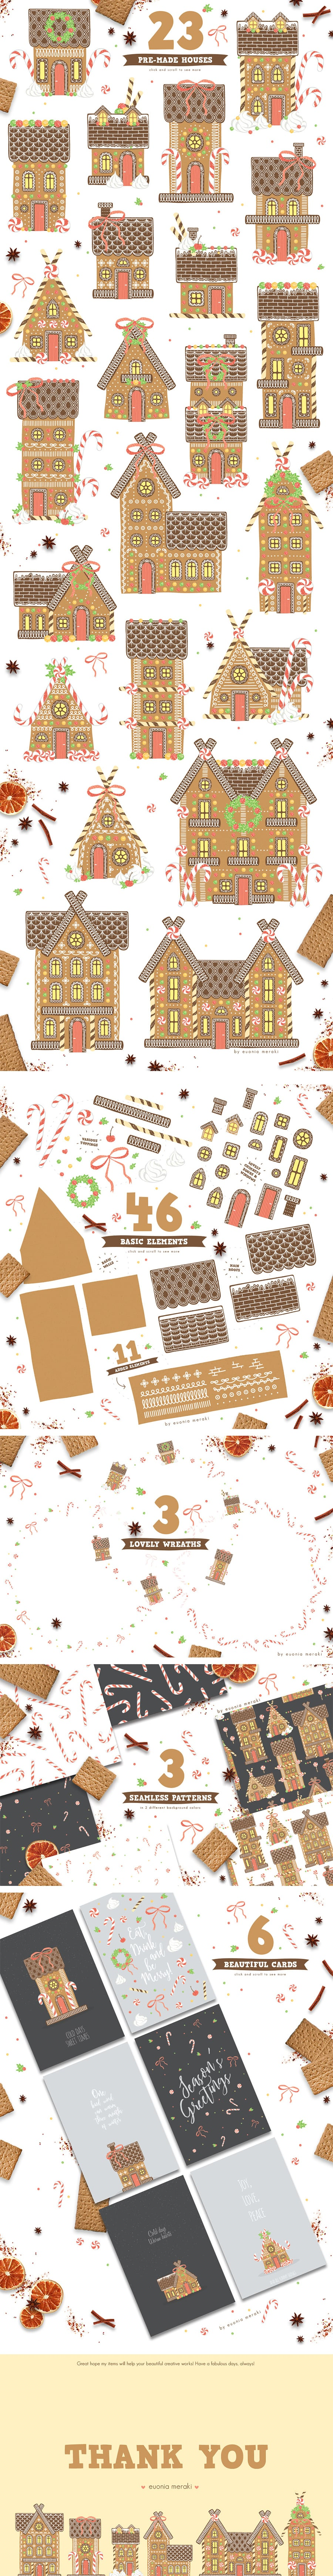 Gingerbread House Creator - just $3 - Gingerbread preview 04